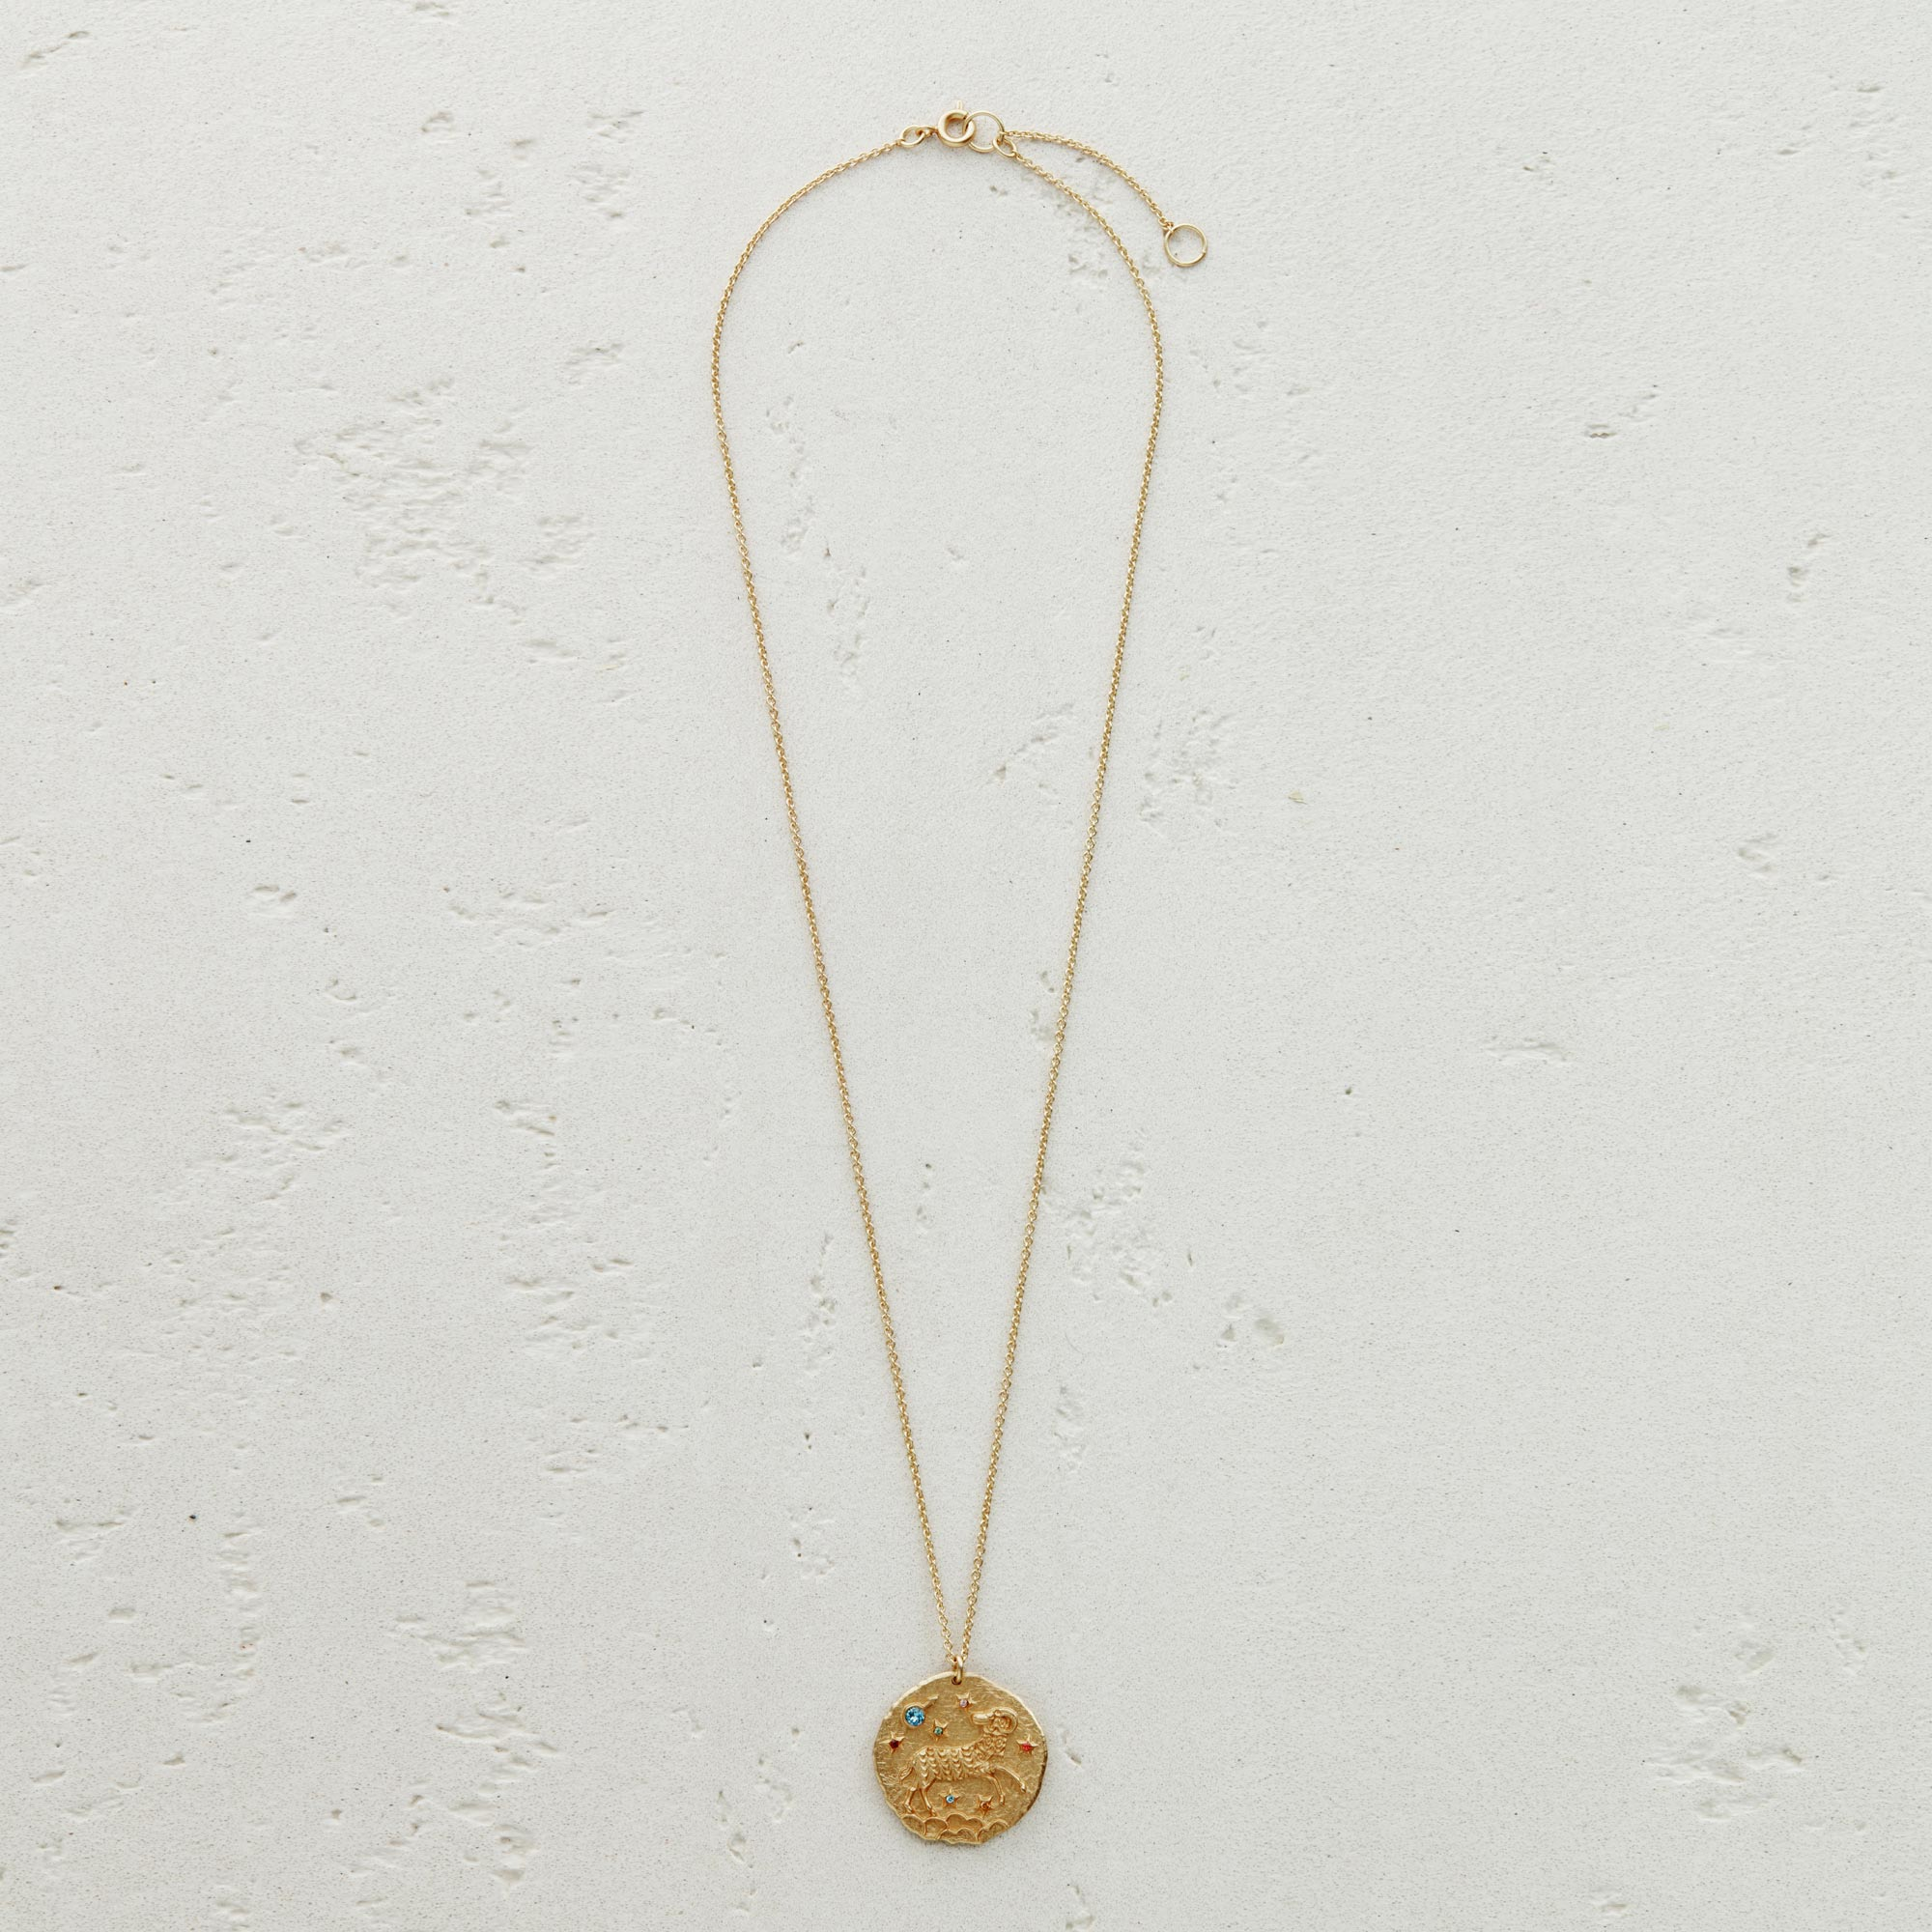 Aries Astro necklace - Gold